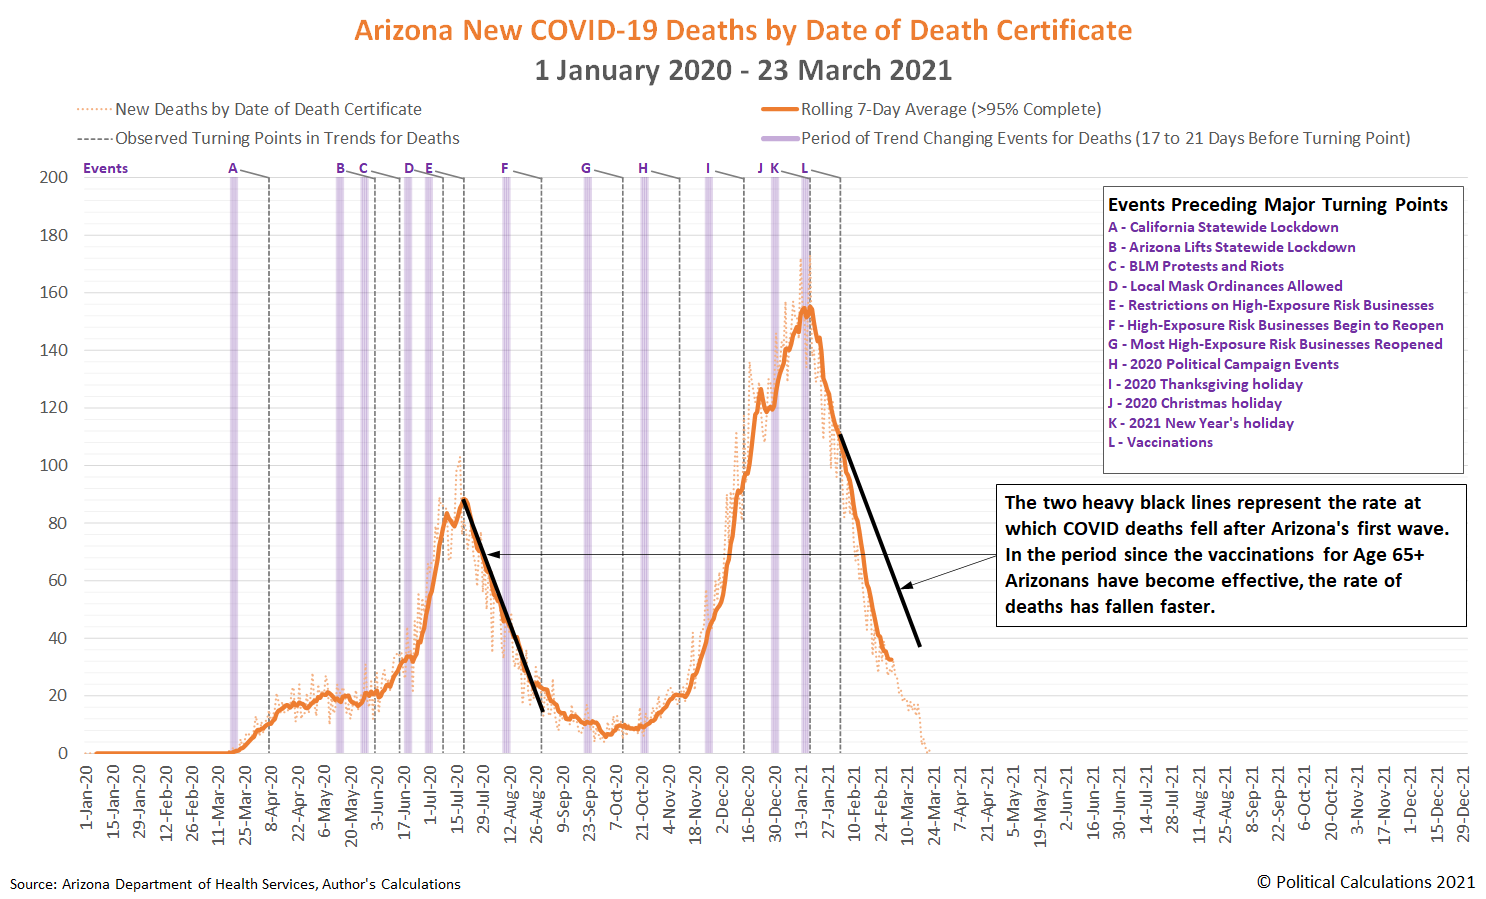 Arizona New COVID-19 Deaths by Date of Death Certificate, 1 January 2020 - 23 March 2021